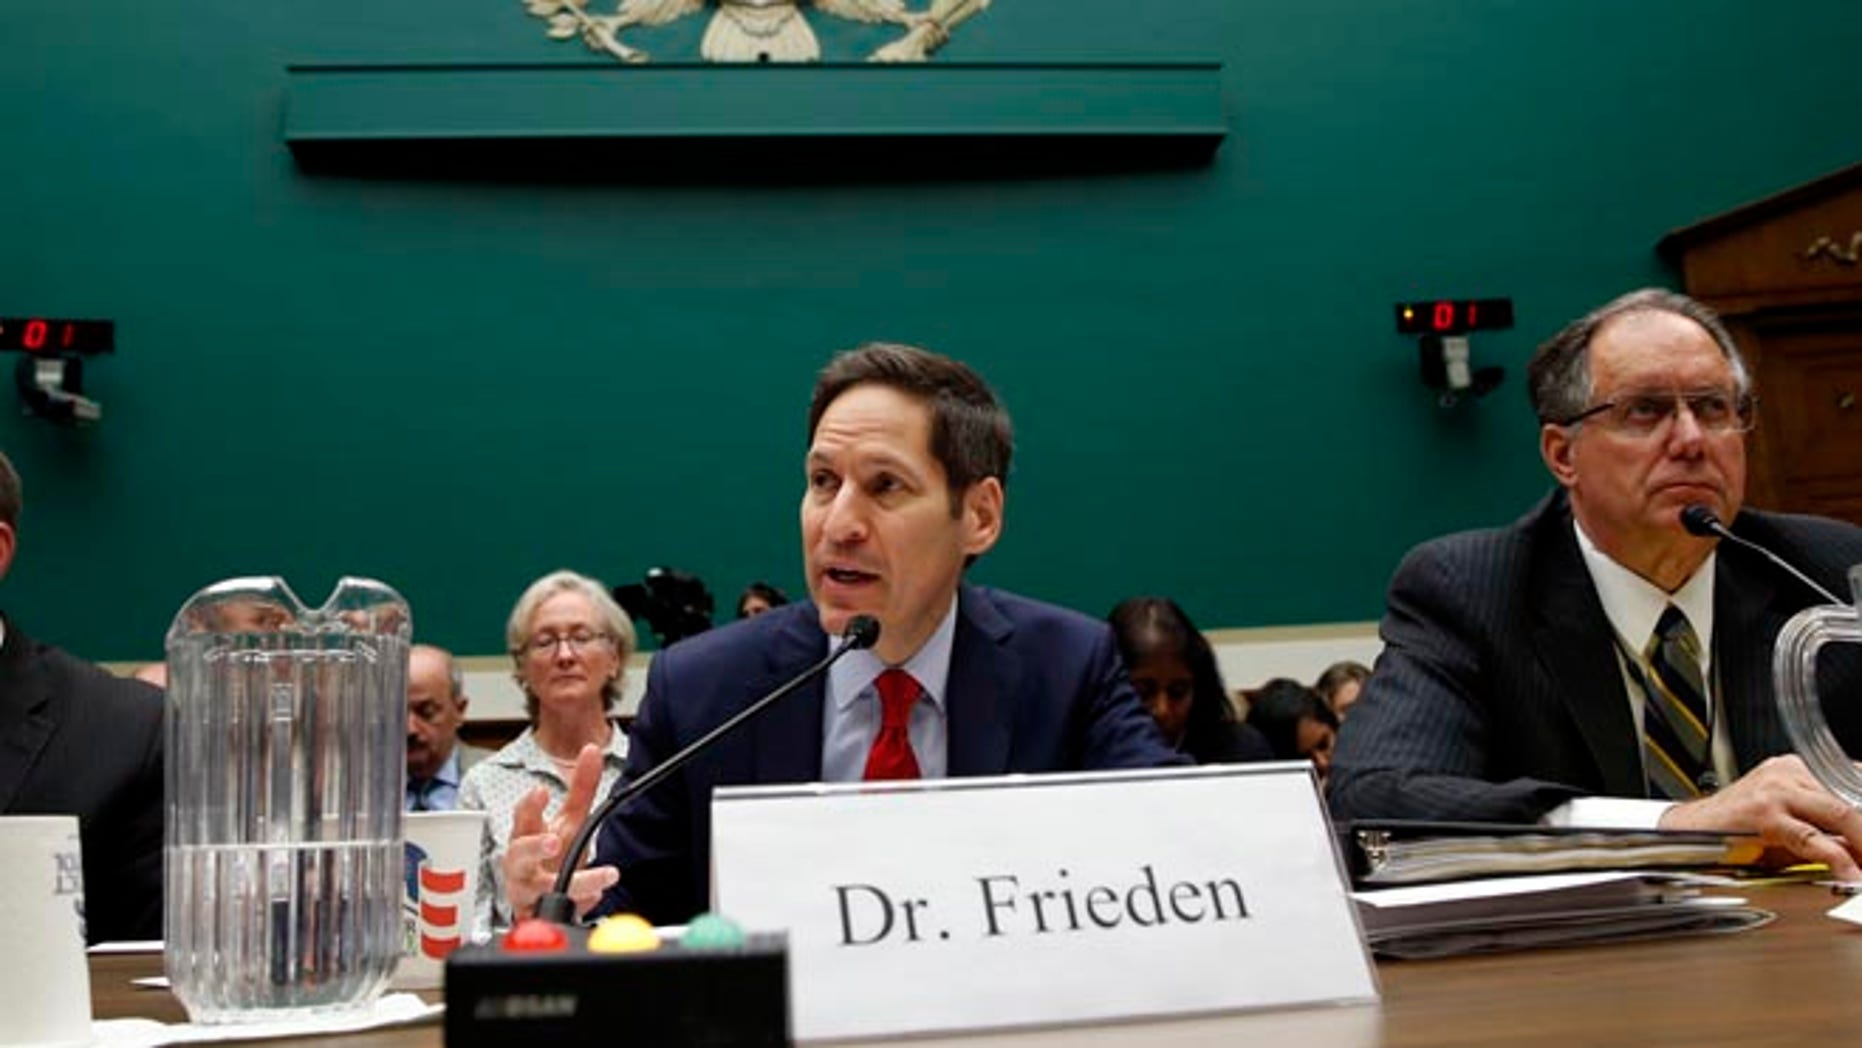 """U.S. Centers for Disease Control and Prevention (CDC) Director Tom Frieden testifies at a House Energy and Commerce Subcommittee on Oversight and Investigations hearing called the """"Review of CDC Anthrax Lab Incident"""" on Capitol Hill in Washington July 16, 2014. Flanking Frieden are Joseph Henderson (L), deputy director of the CDC's Office of Security and Emergency Preparedness, and Jere Dick, associate deputy administrator of the Animal and Plant Health Inspection Services at the U.S. Department of Agriculture."""